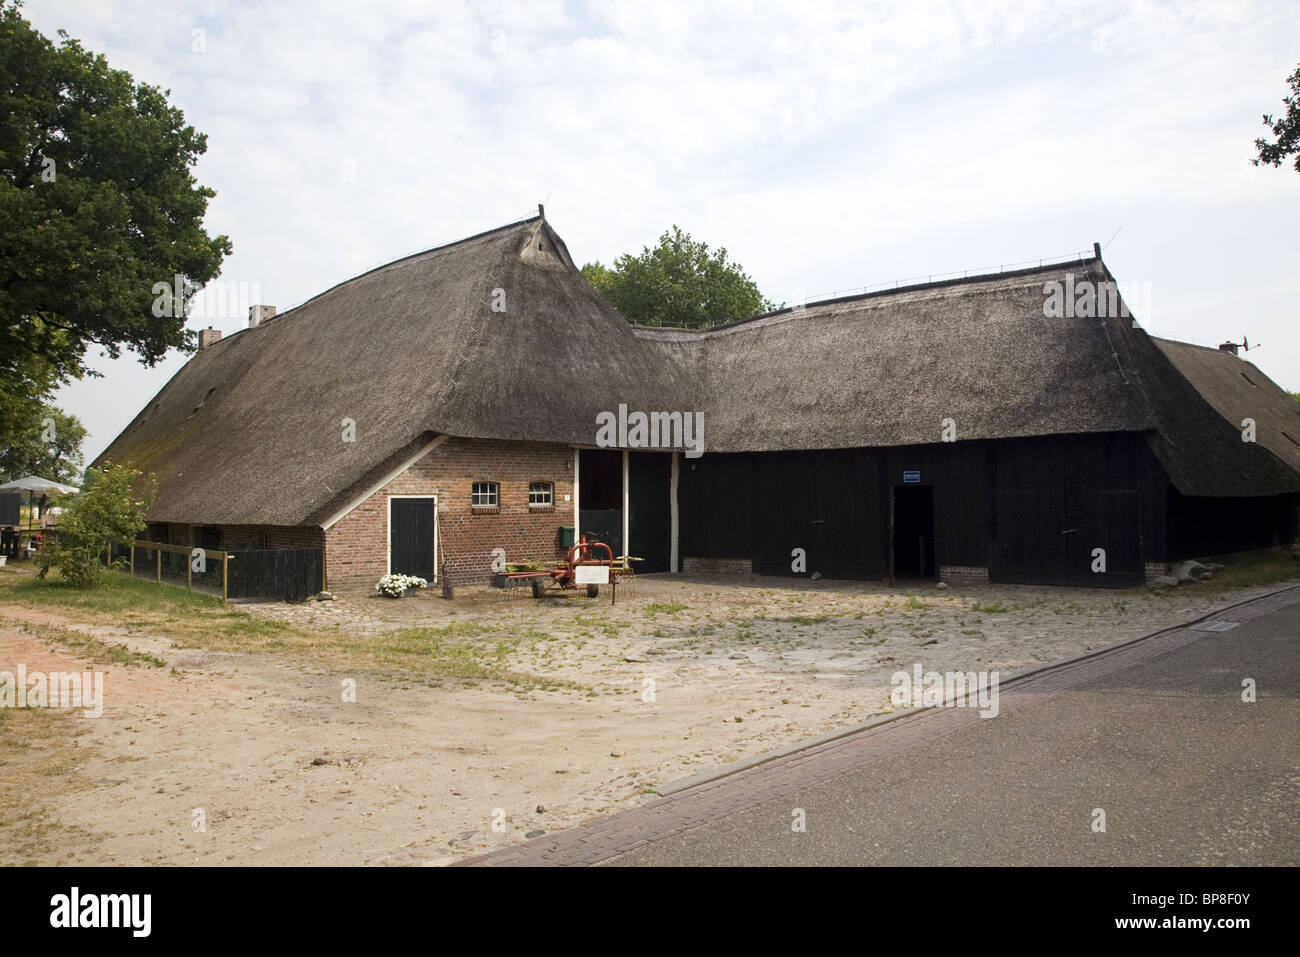 Oldest Farm Of Western Europe In The Village Anderen Drenthe Stock Photo Alamy